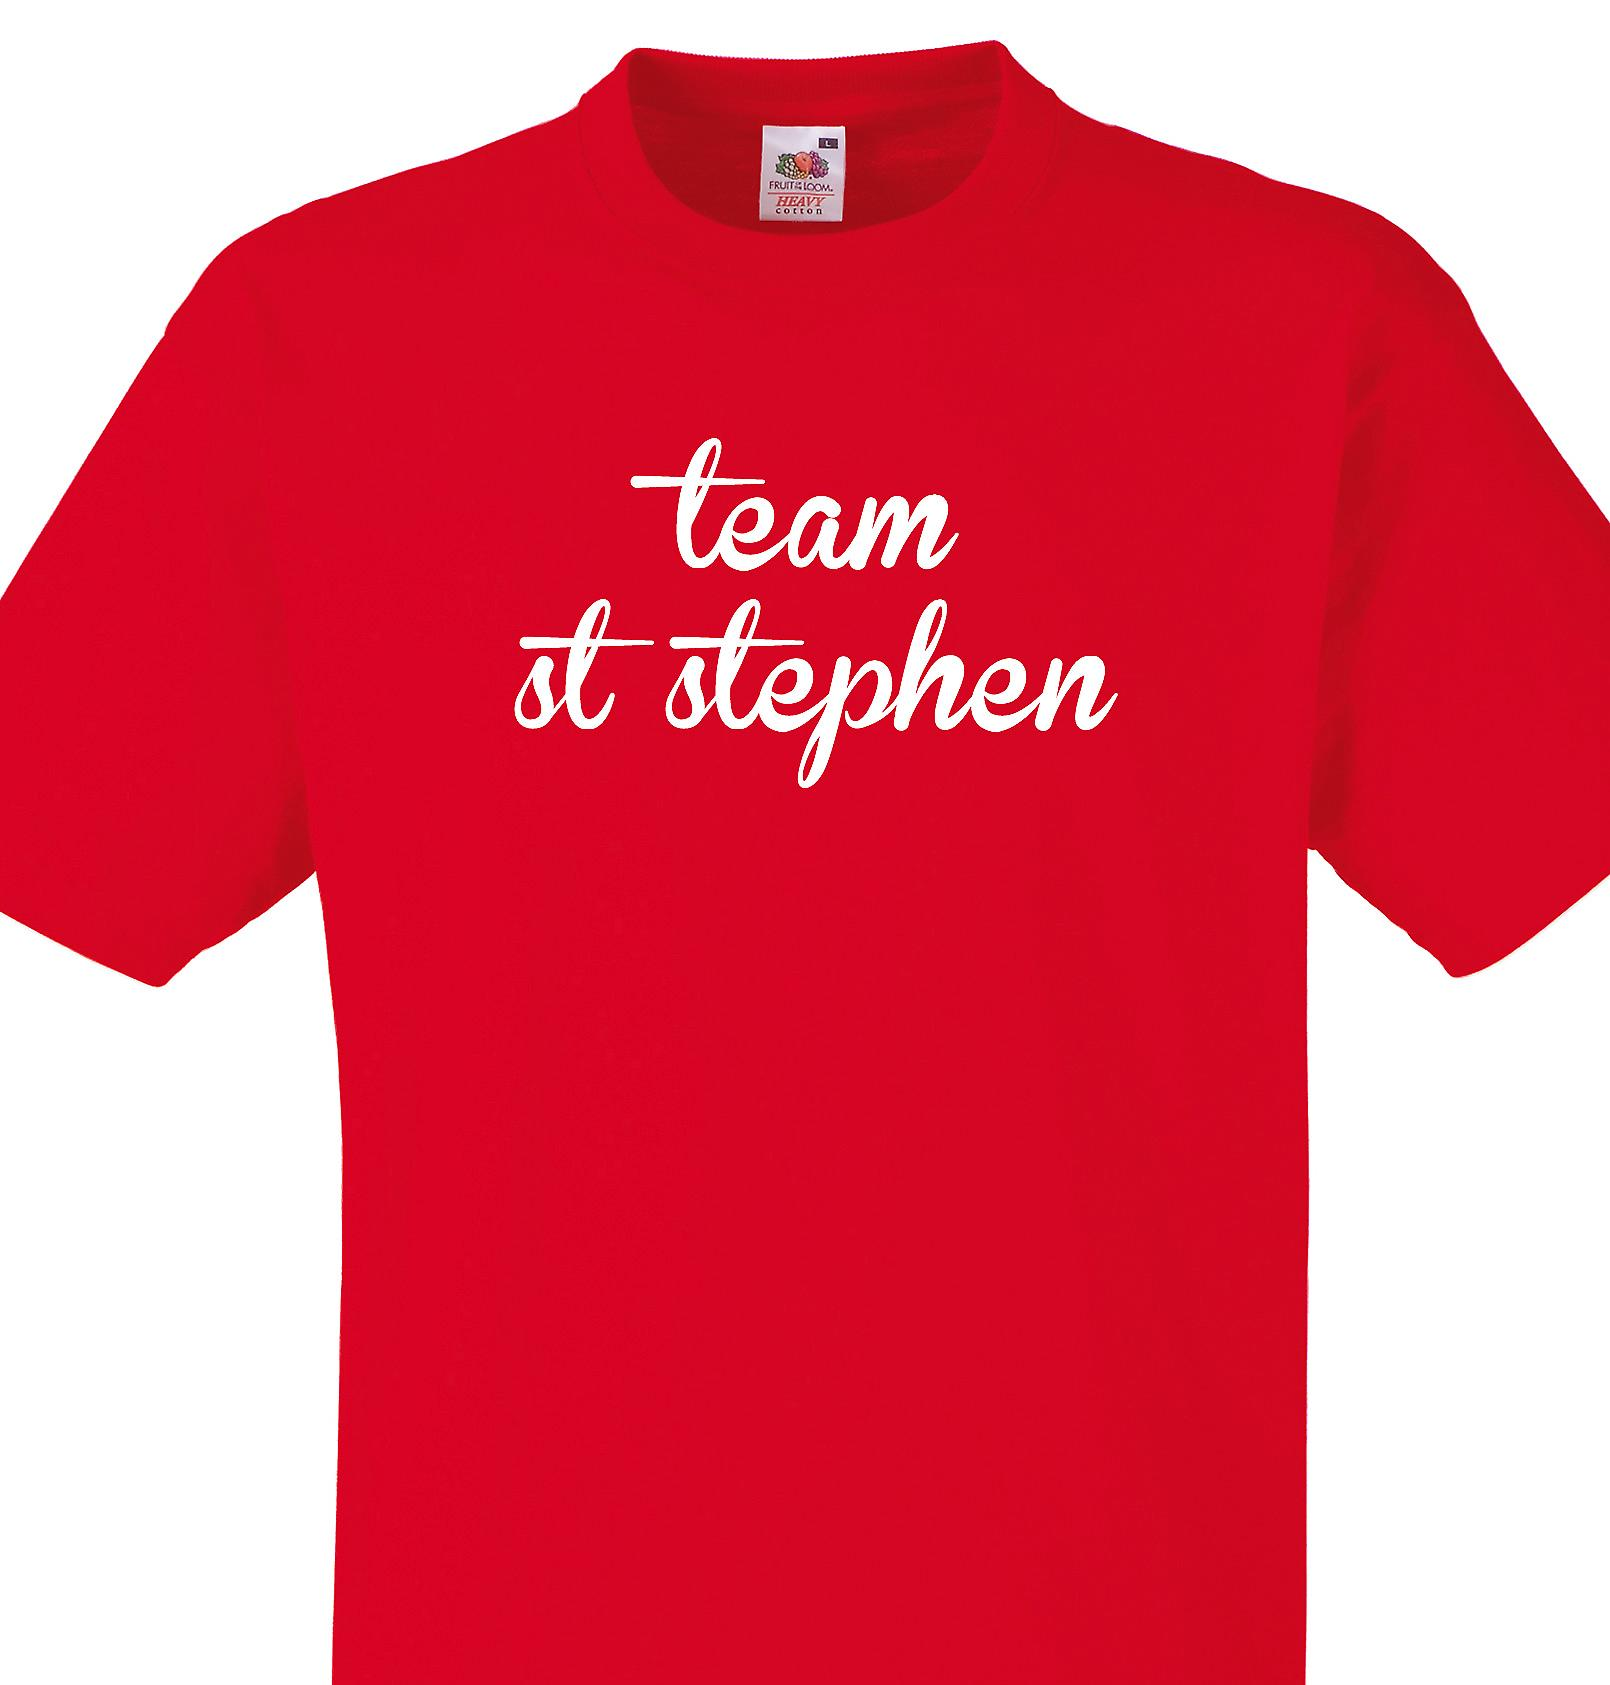 Team St stephen Red T shirt